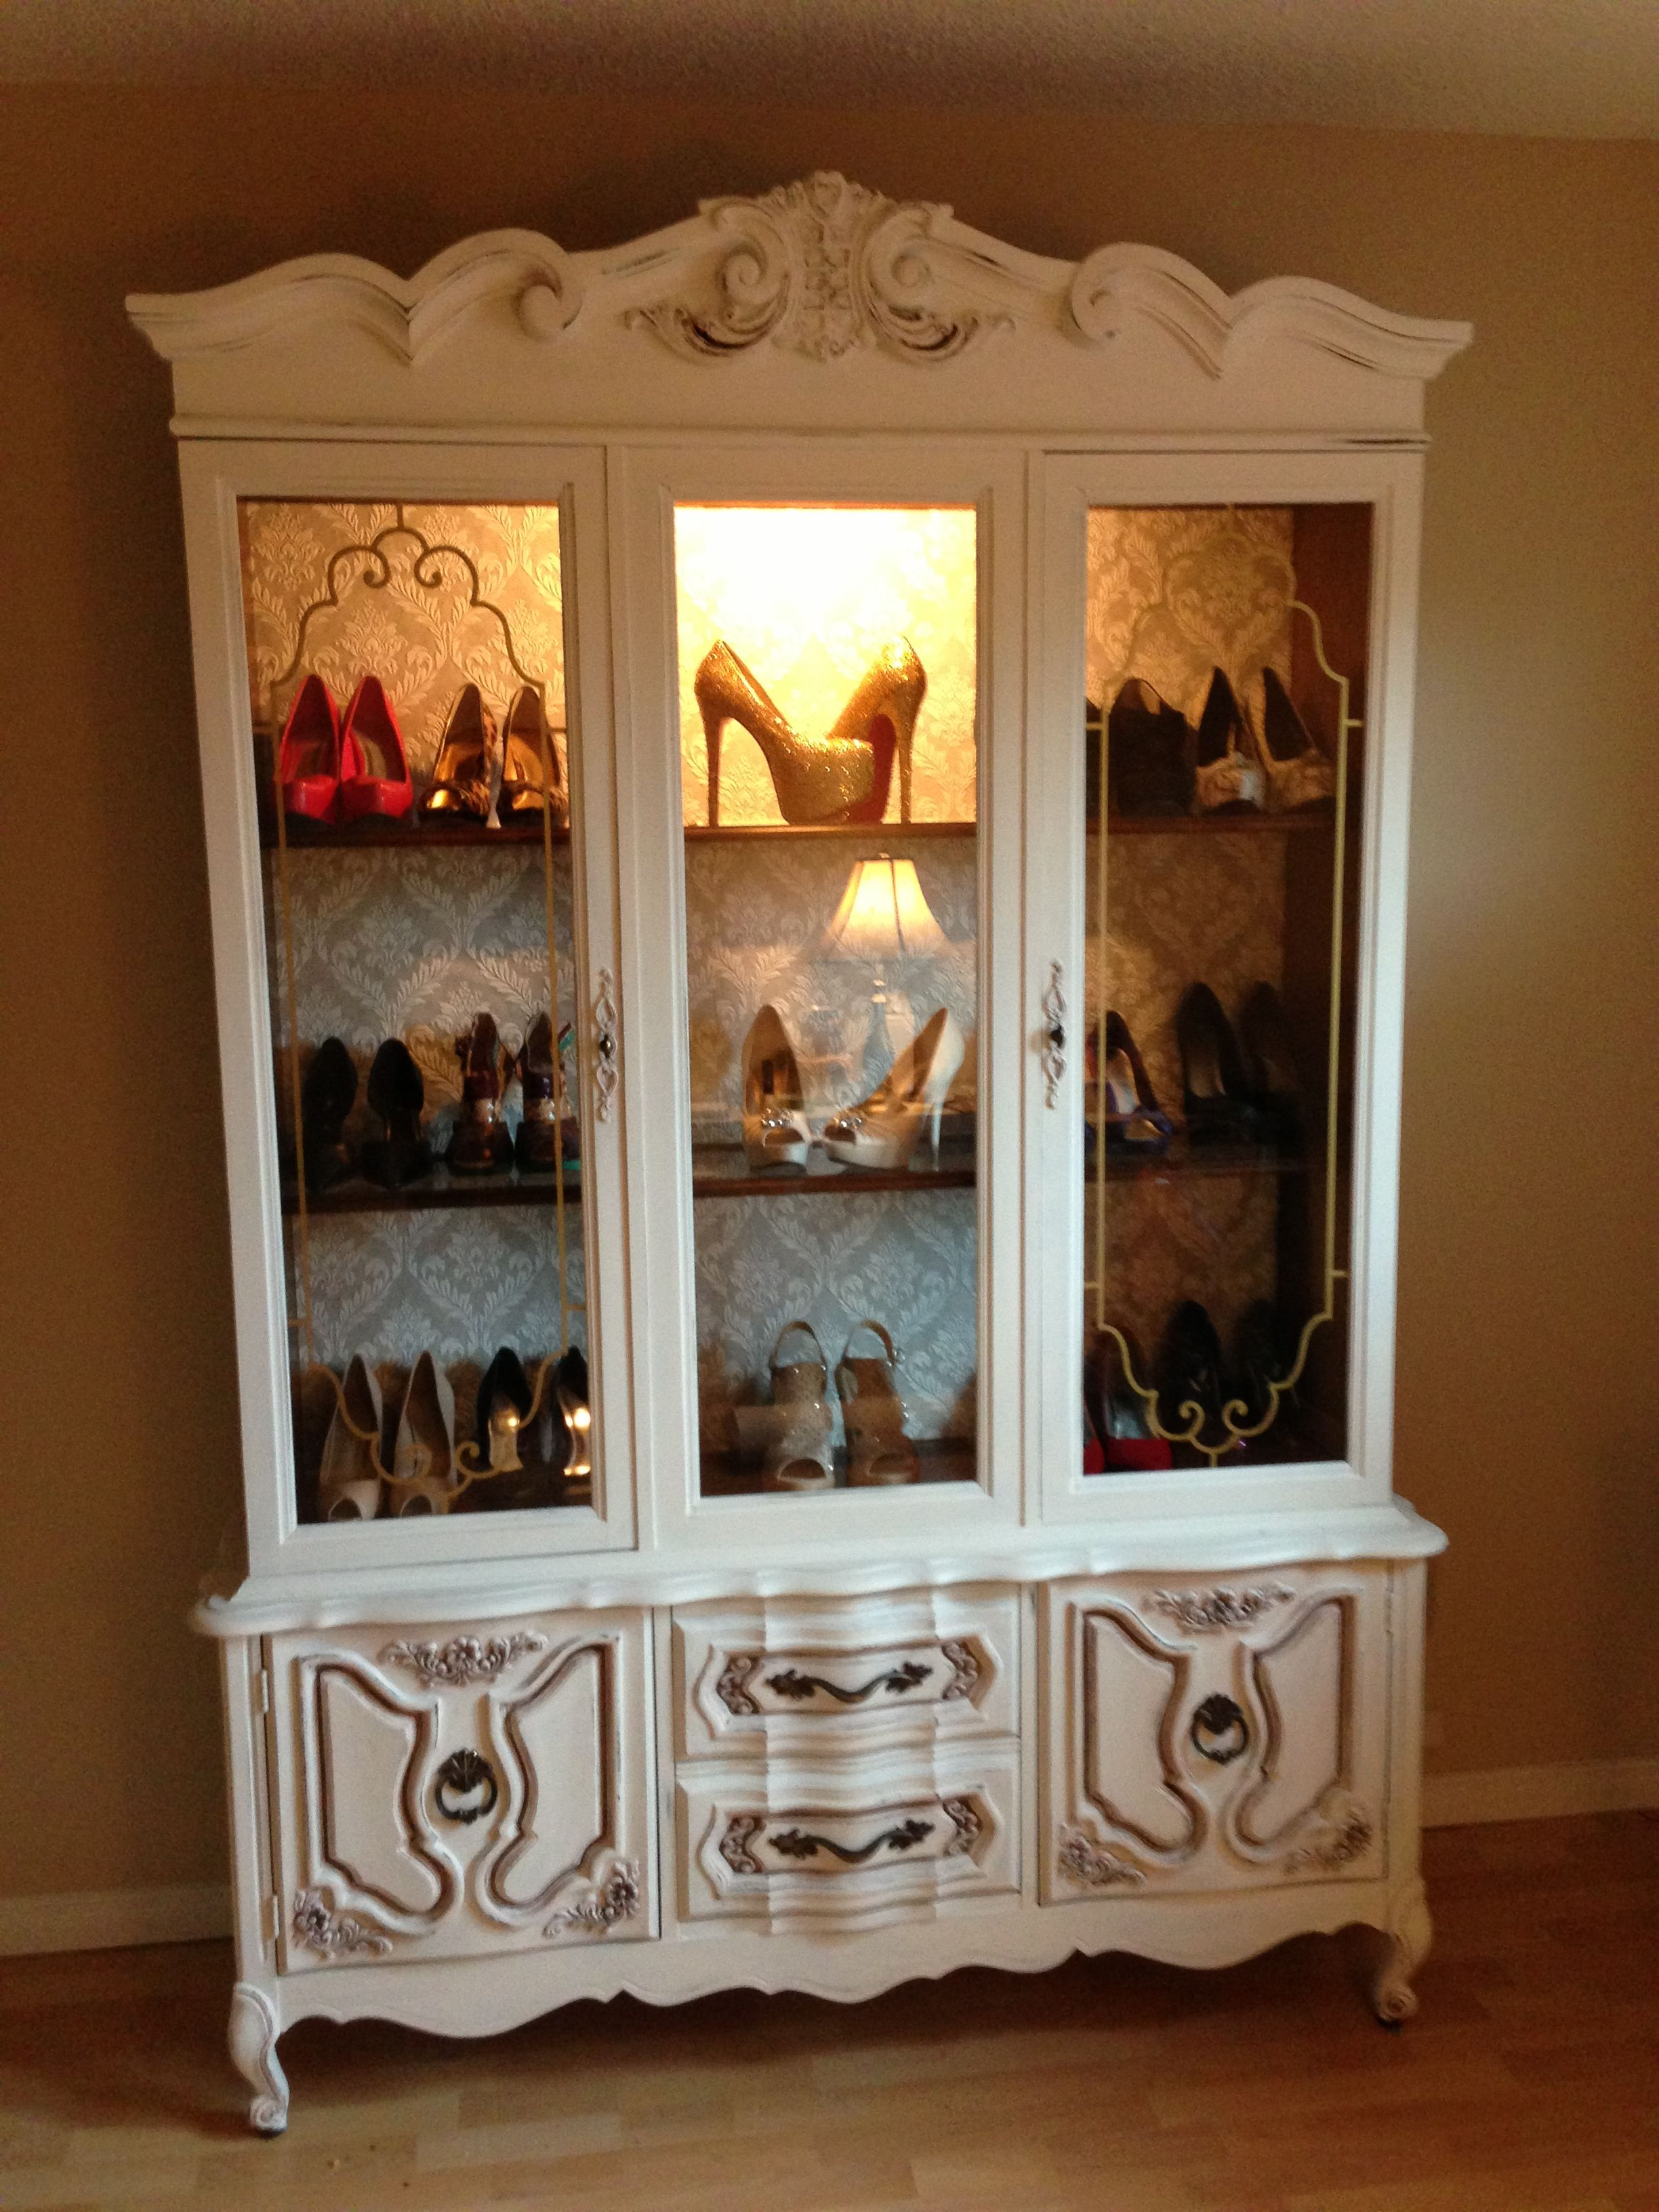 Repurposed A China Cabinet Into A Shoe Display Cost Me